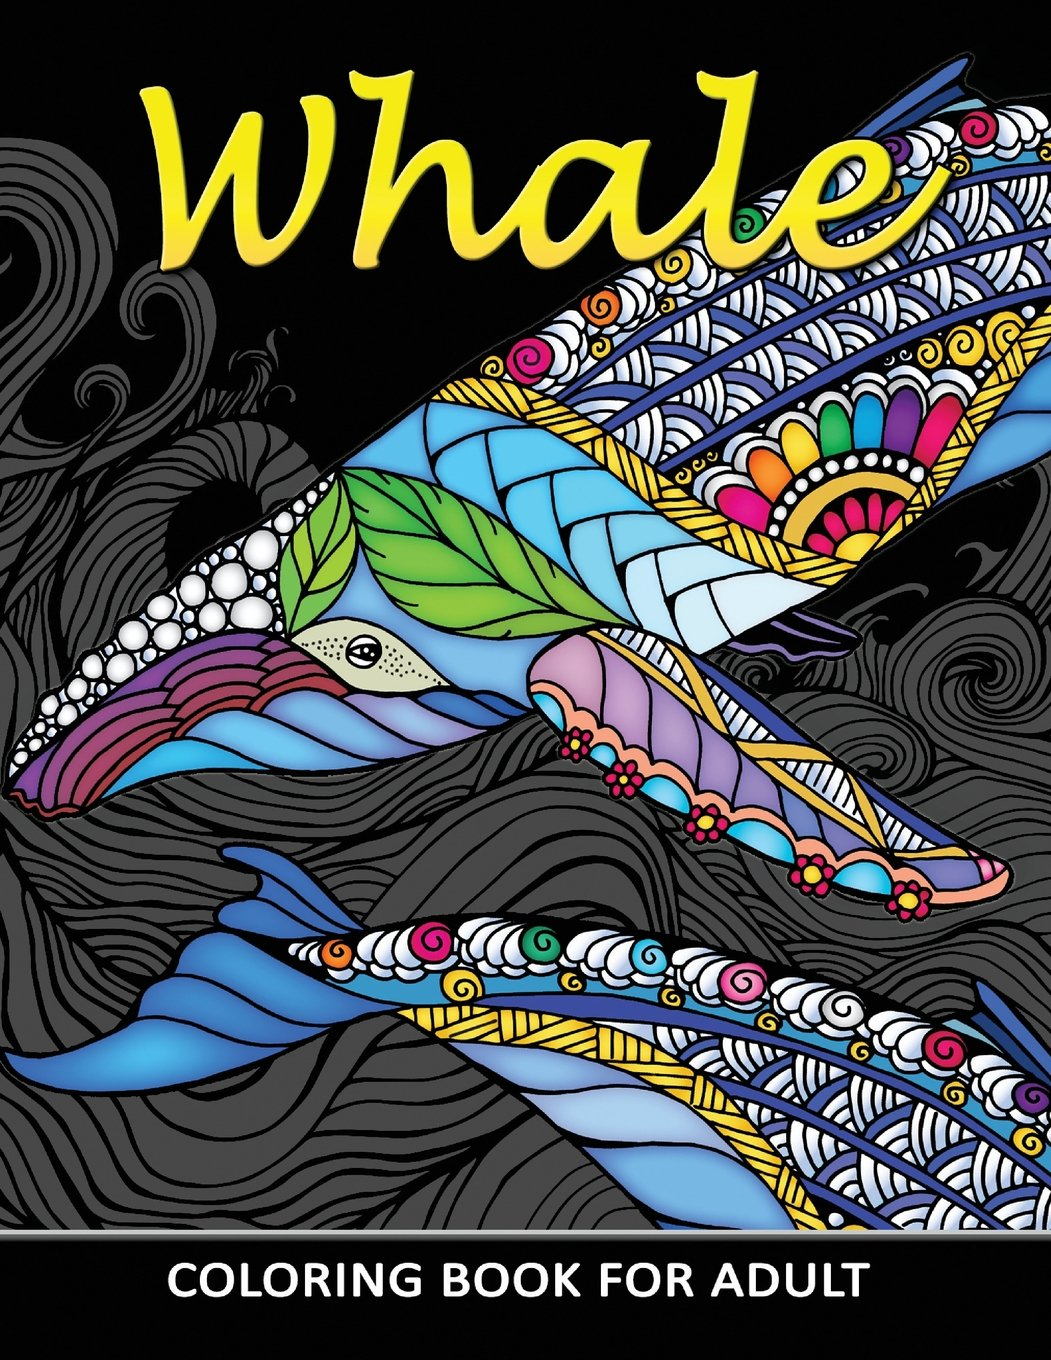 Amazon Com Whale Coloring Book For Adults Unique Coloring Book Easy Fun Beautiful Coloring Pages For Adults And Grown Up 9781717367907 Kodomo Publishing Books